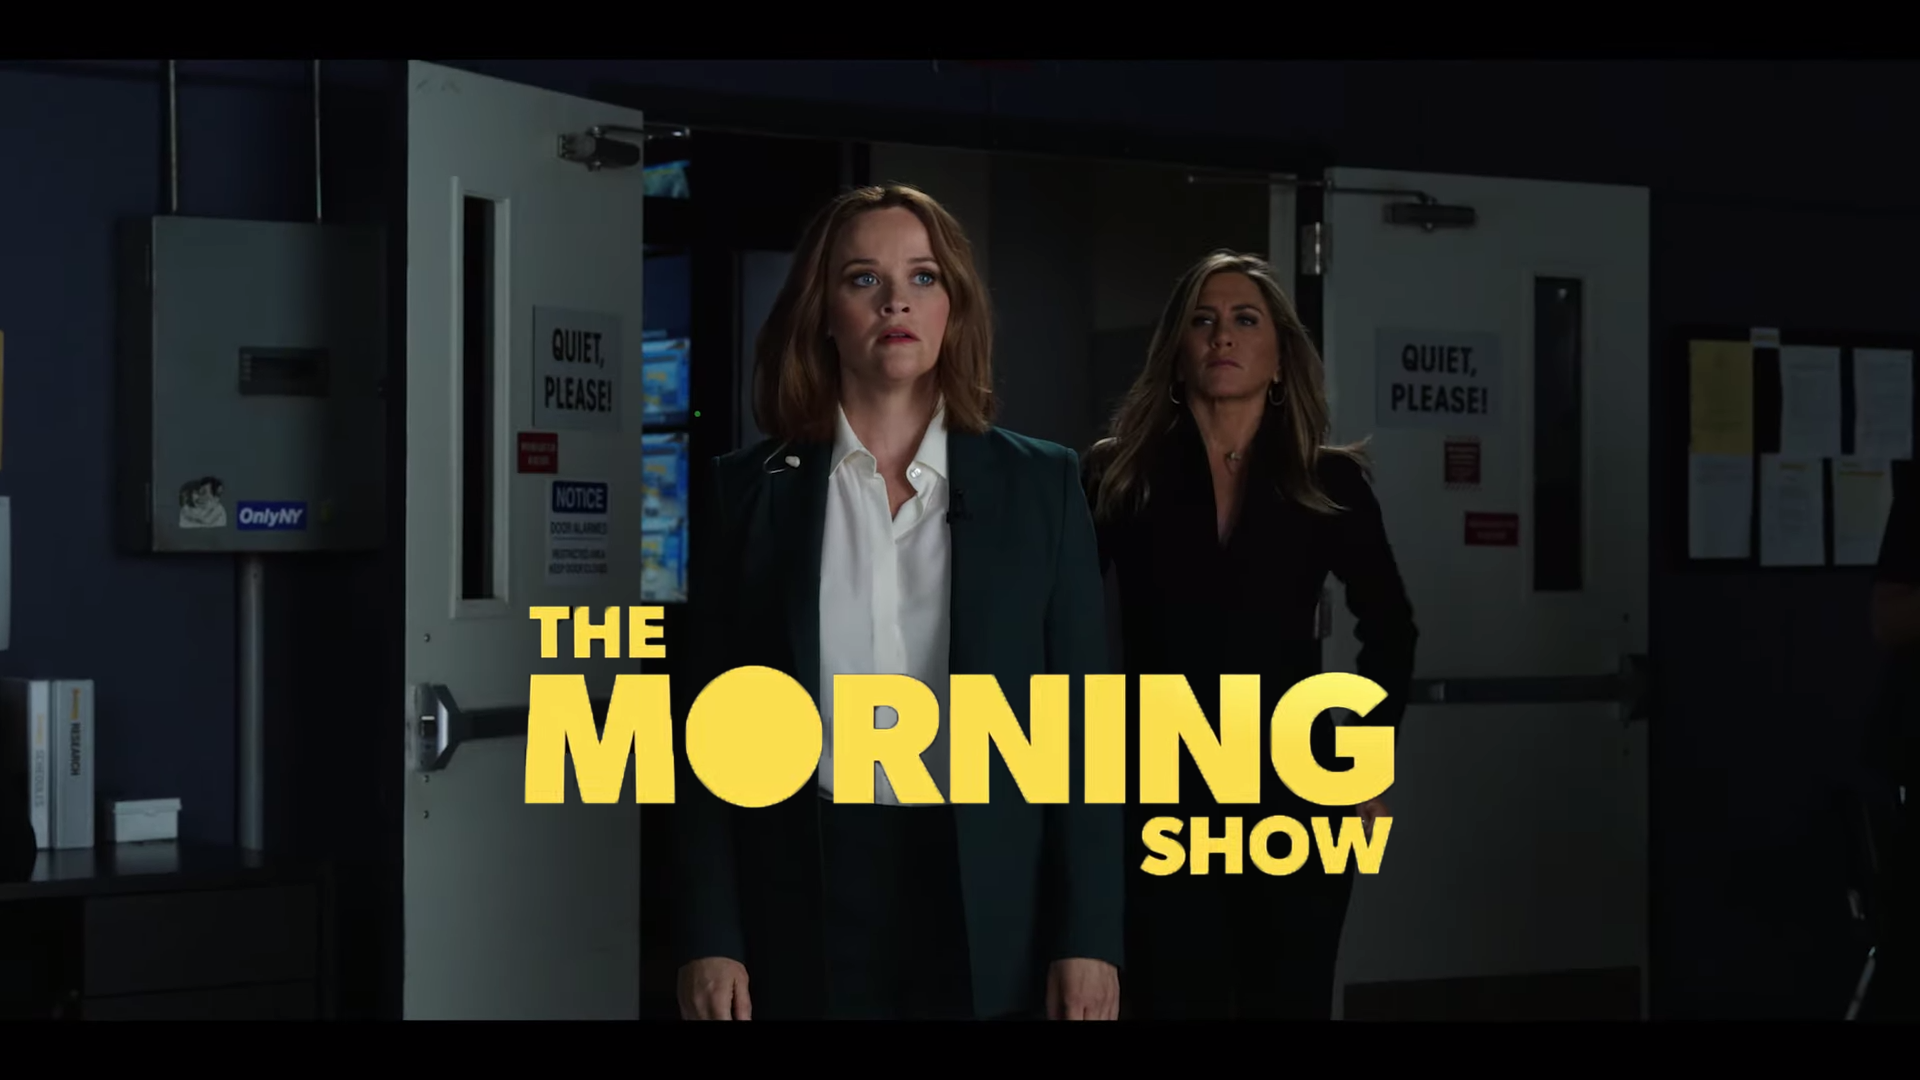 Apple TV Releases Official Trailer for 'The Morning Show'